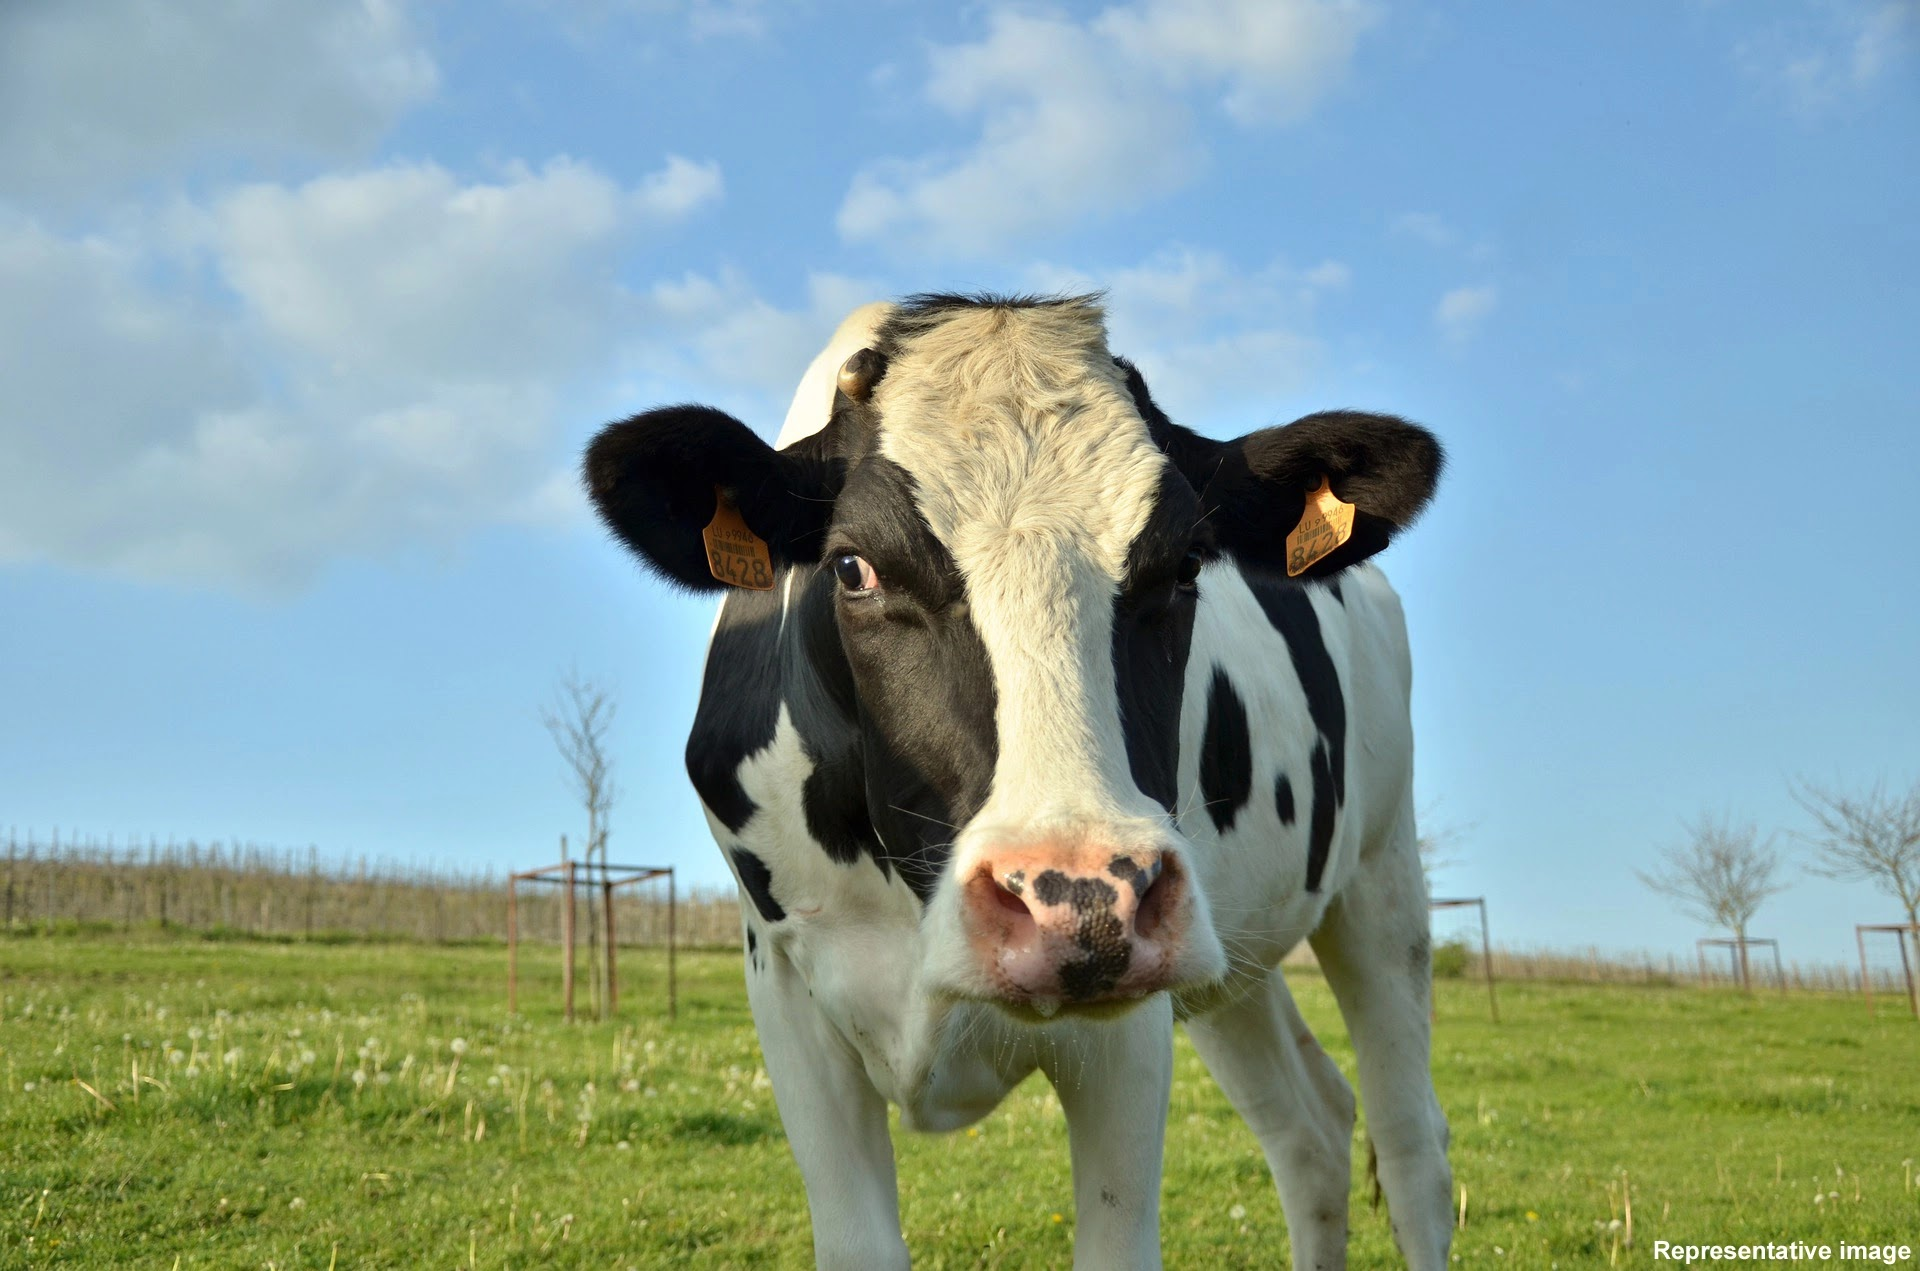 Scientists Have Discovered Microbe In Cow's Stomach That Can Break Down Plastic